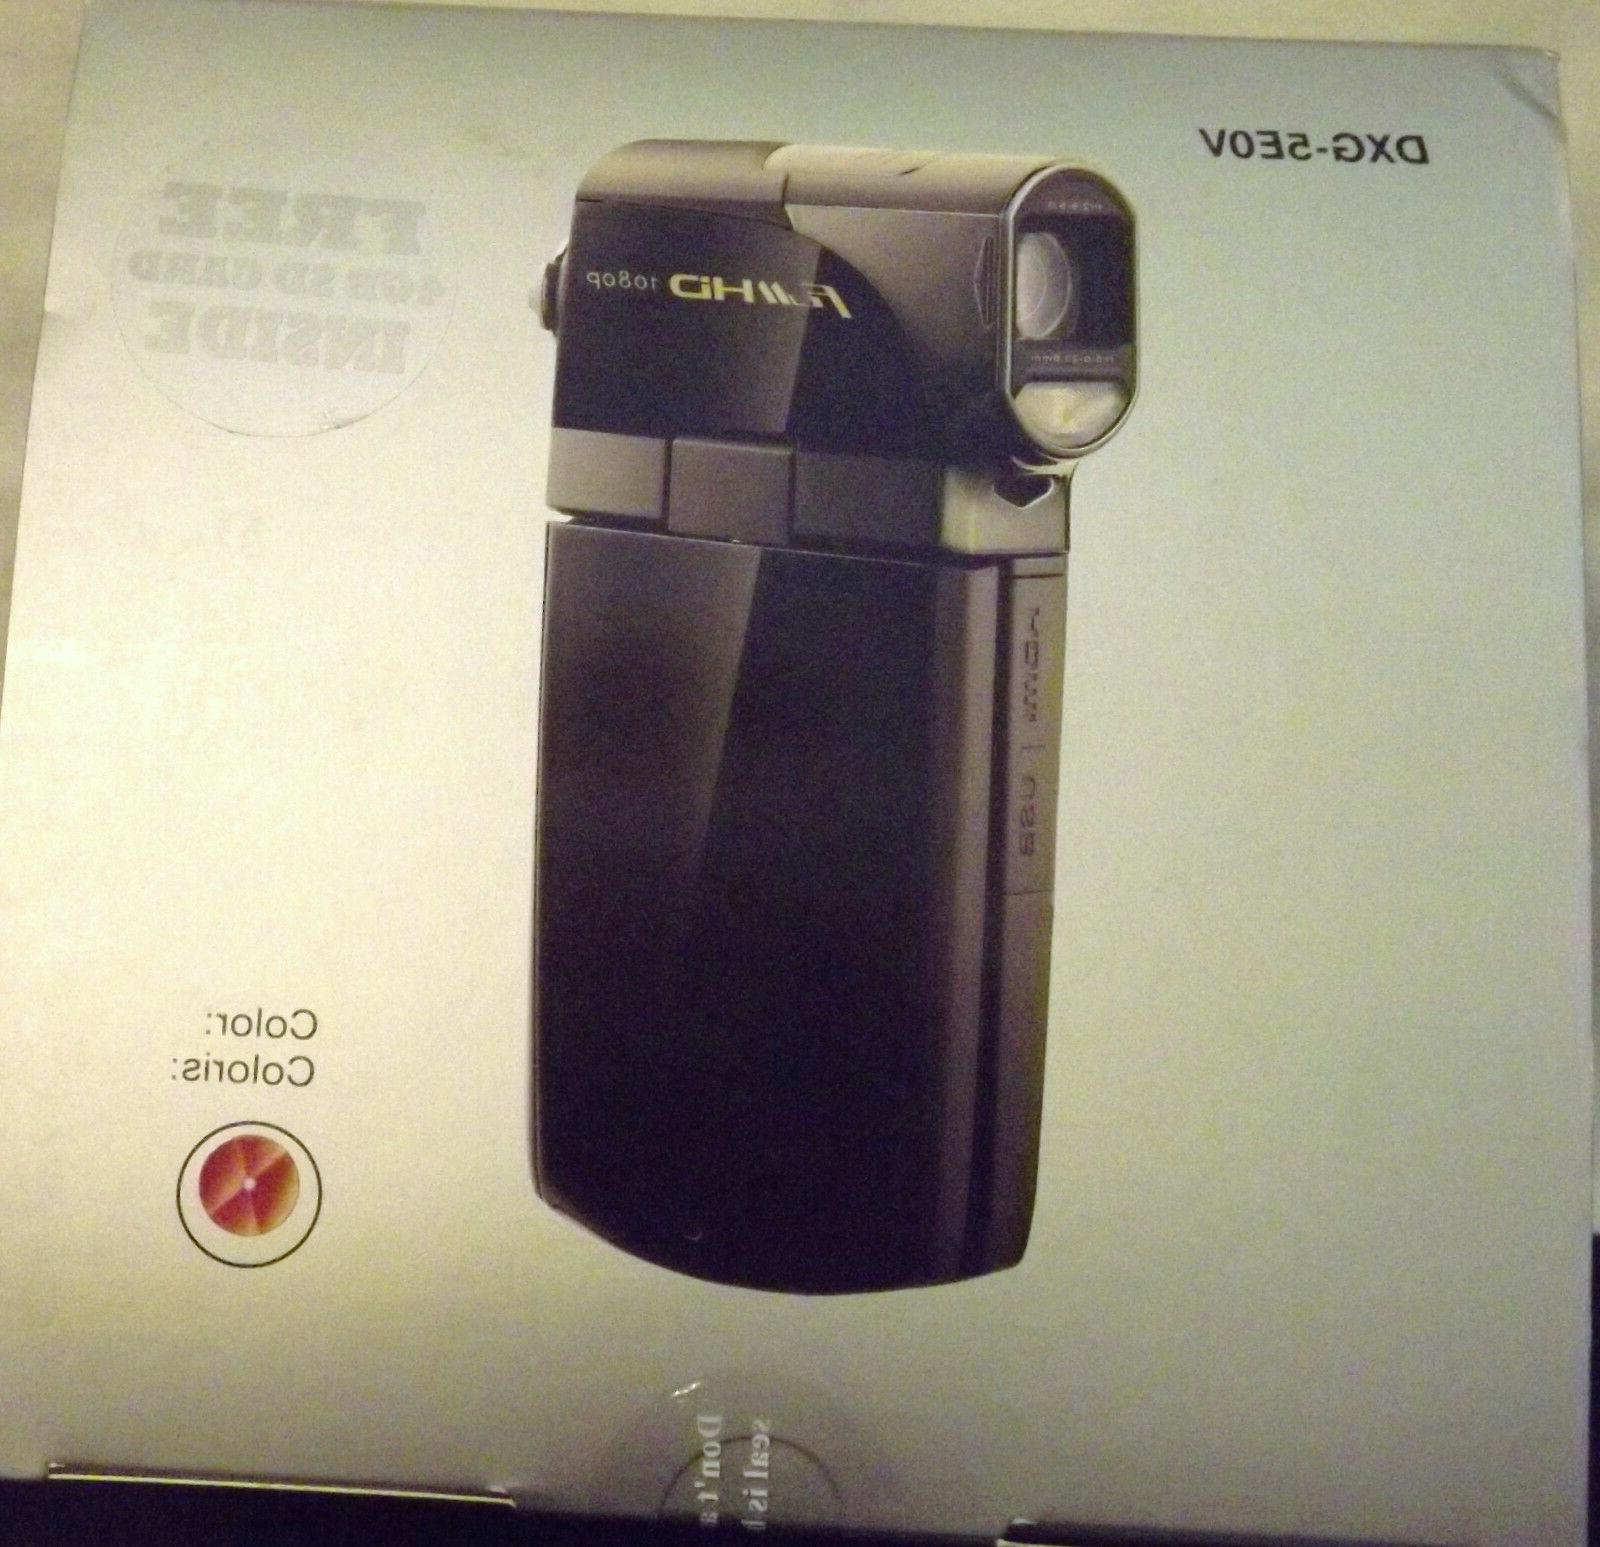 DXG LUXE COLLECTION 1080P HP CAMCORDER 5X OPTICAL ZOOM NEW S